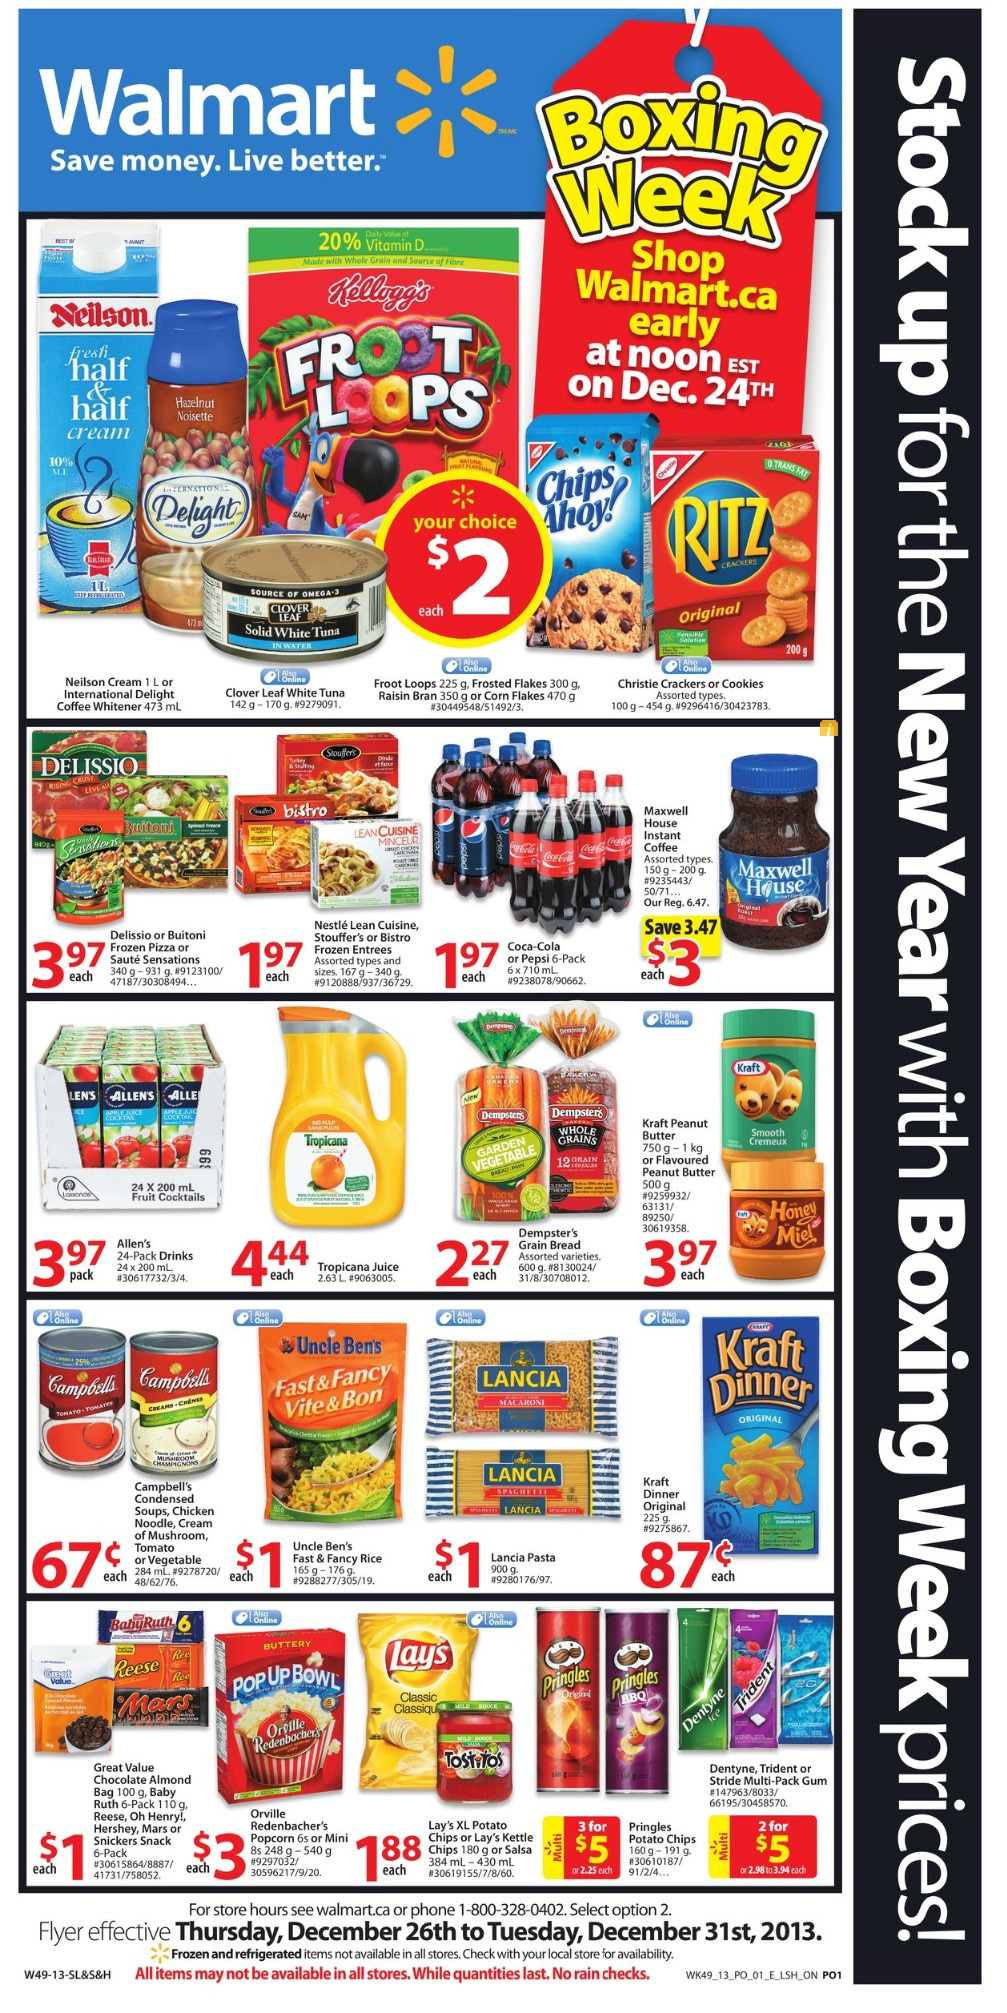 Online Coupons For Walmart Groceries - Coupon Trivia Crack - Free Printable Food Coupons For Walmart